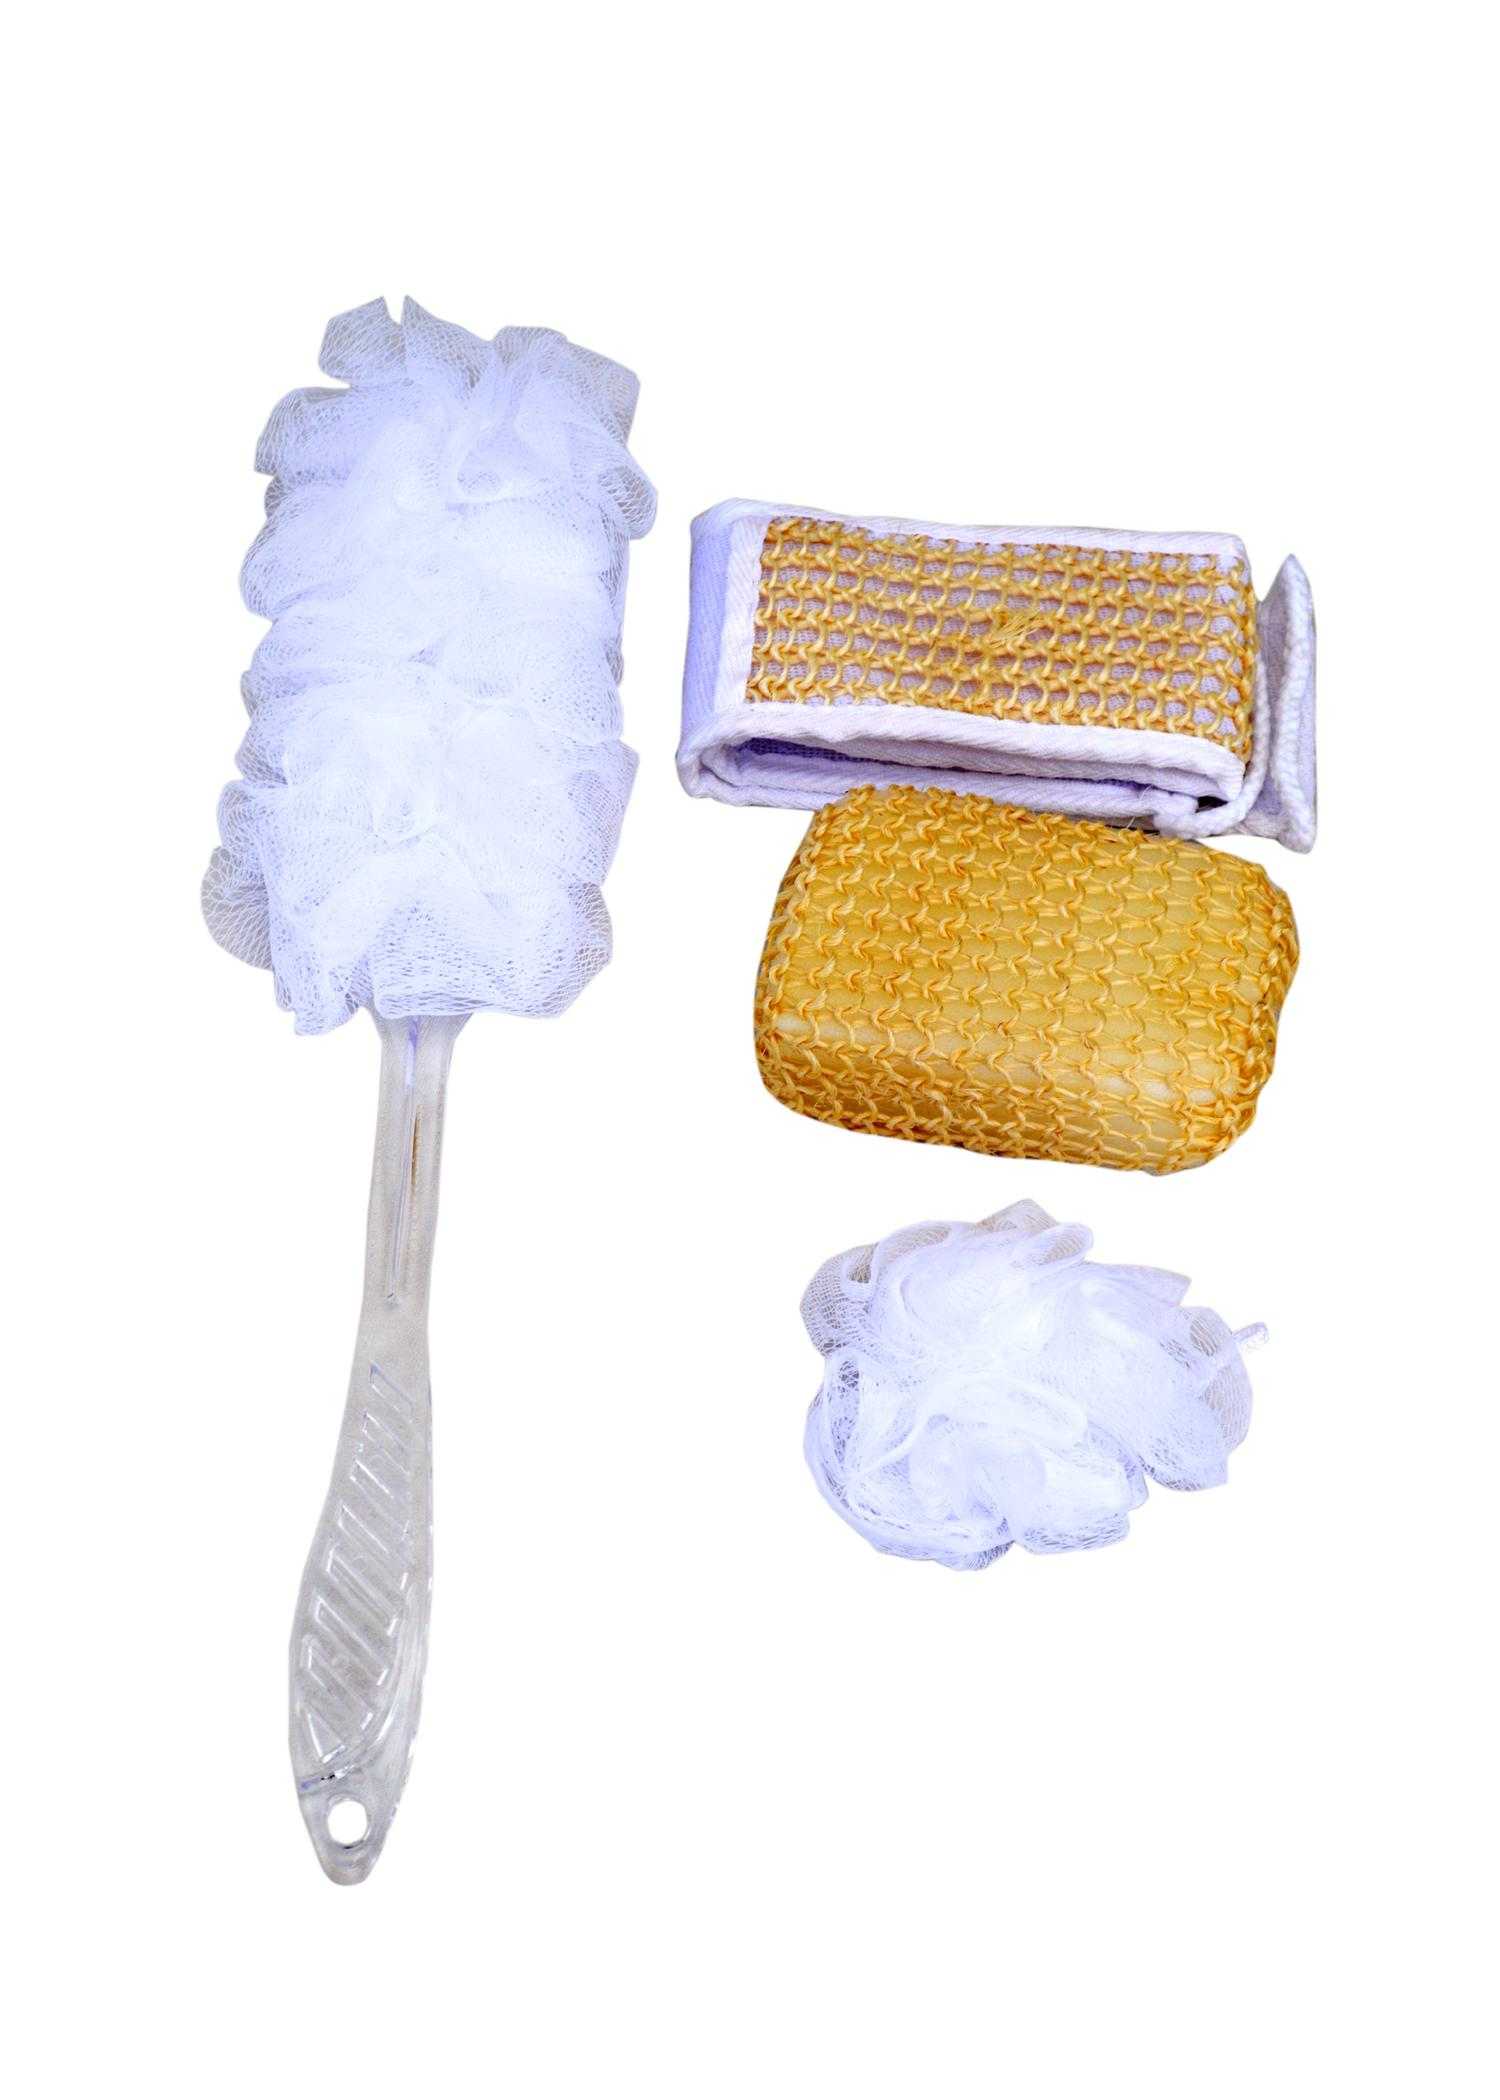 Bath & Shower Sponge with stick (Natural Bathing Suit) - 4pcs